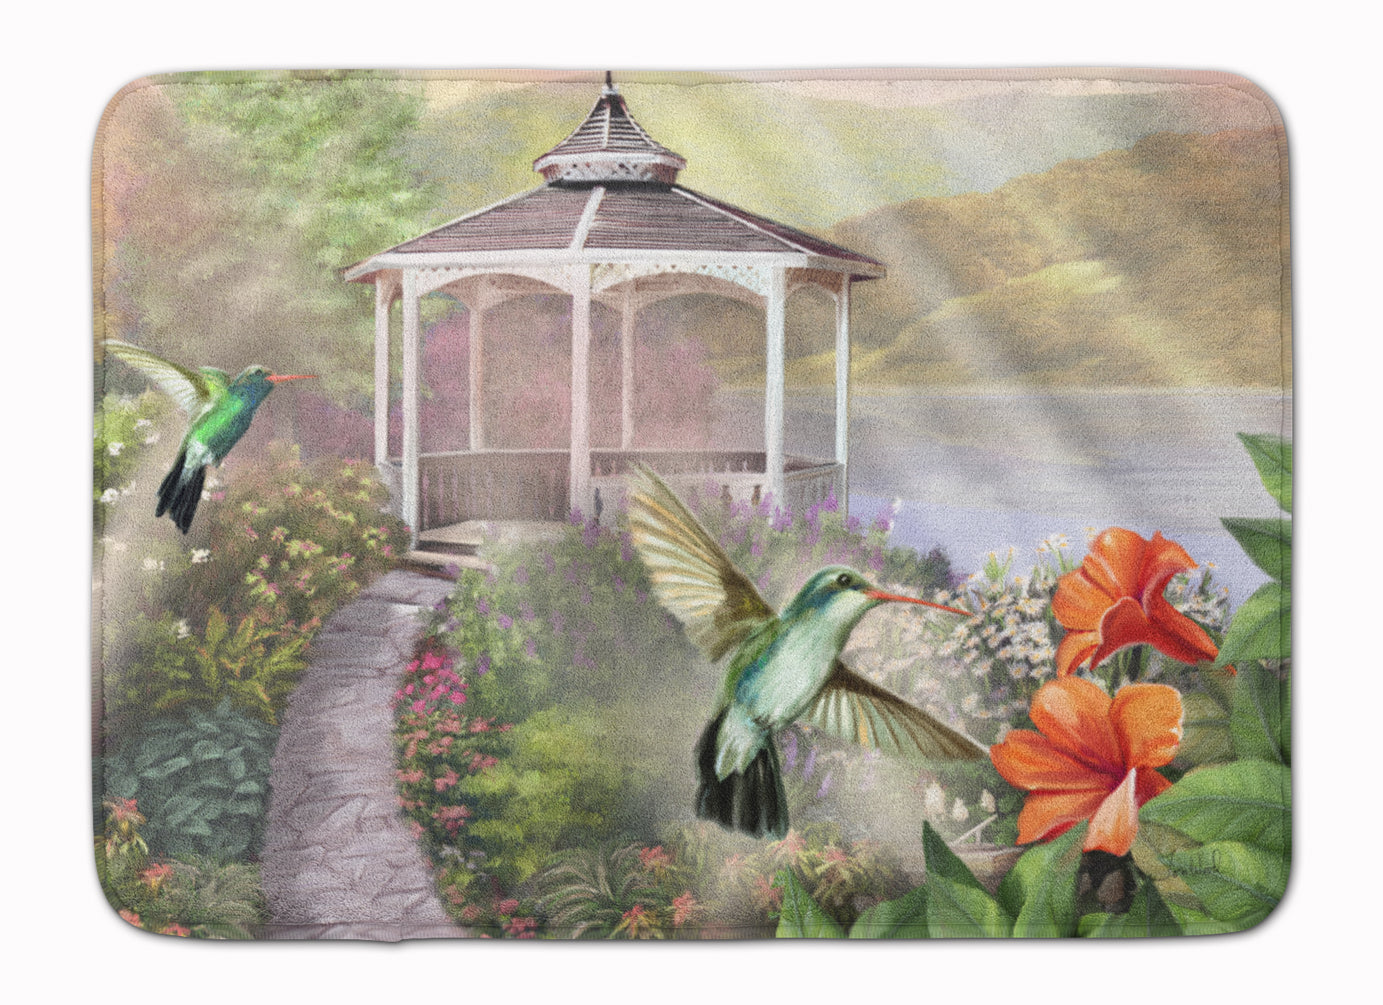 Garden Gazebo Hummingbird Duo Machine Washable Memory Foam Mat PTW2053RUG by Caroline's Treasures